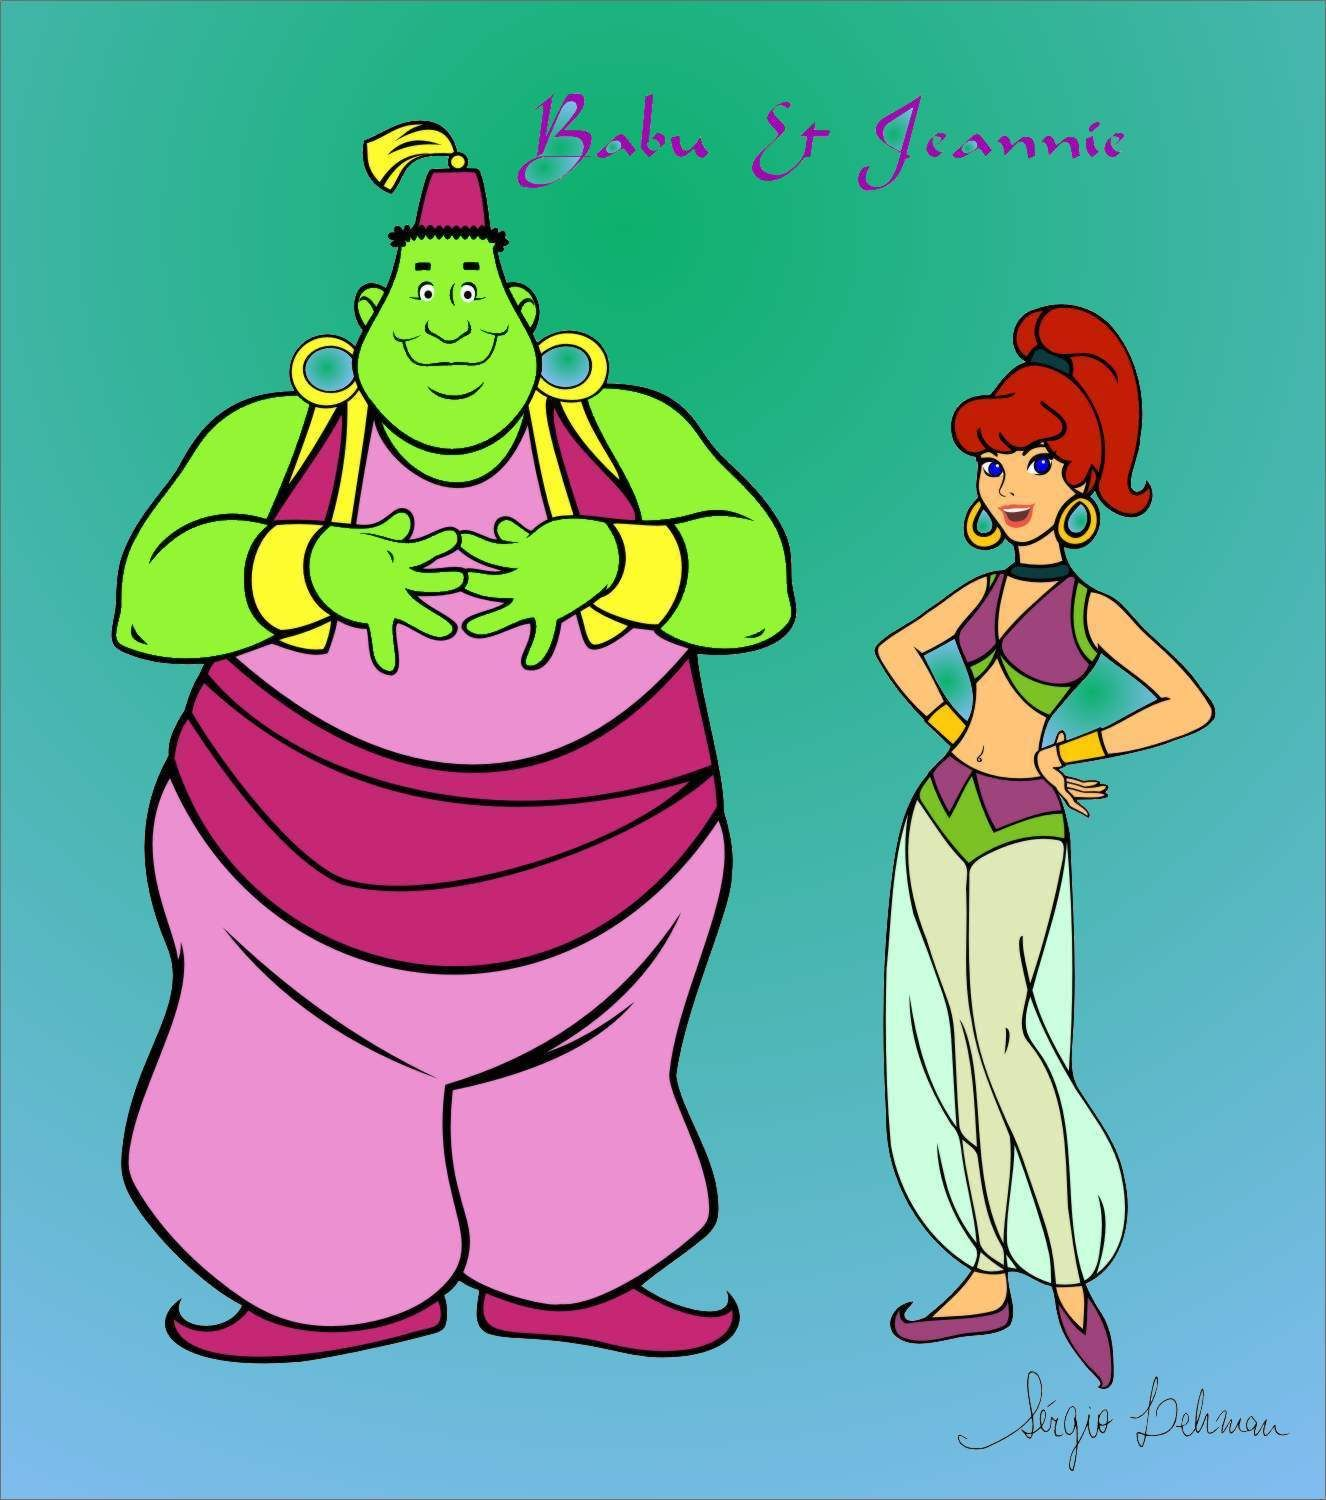 Jeannie and Babu Hanna-Barbera | Classic Cartoons in 2019